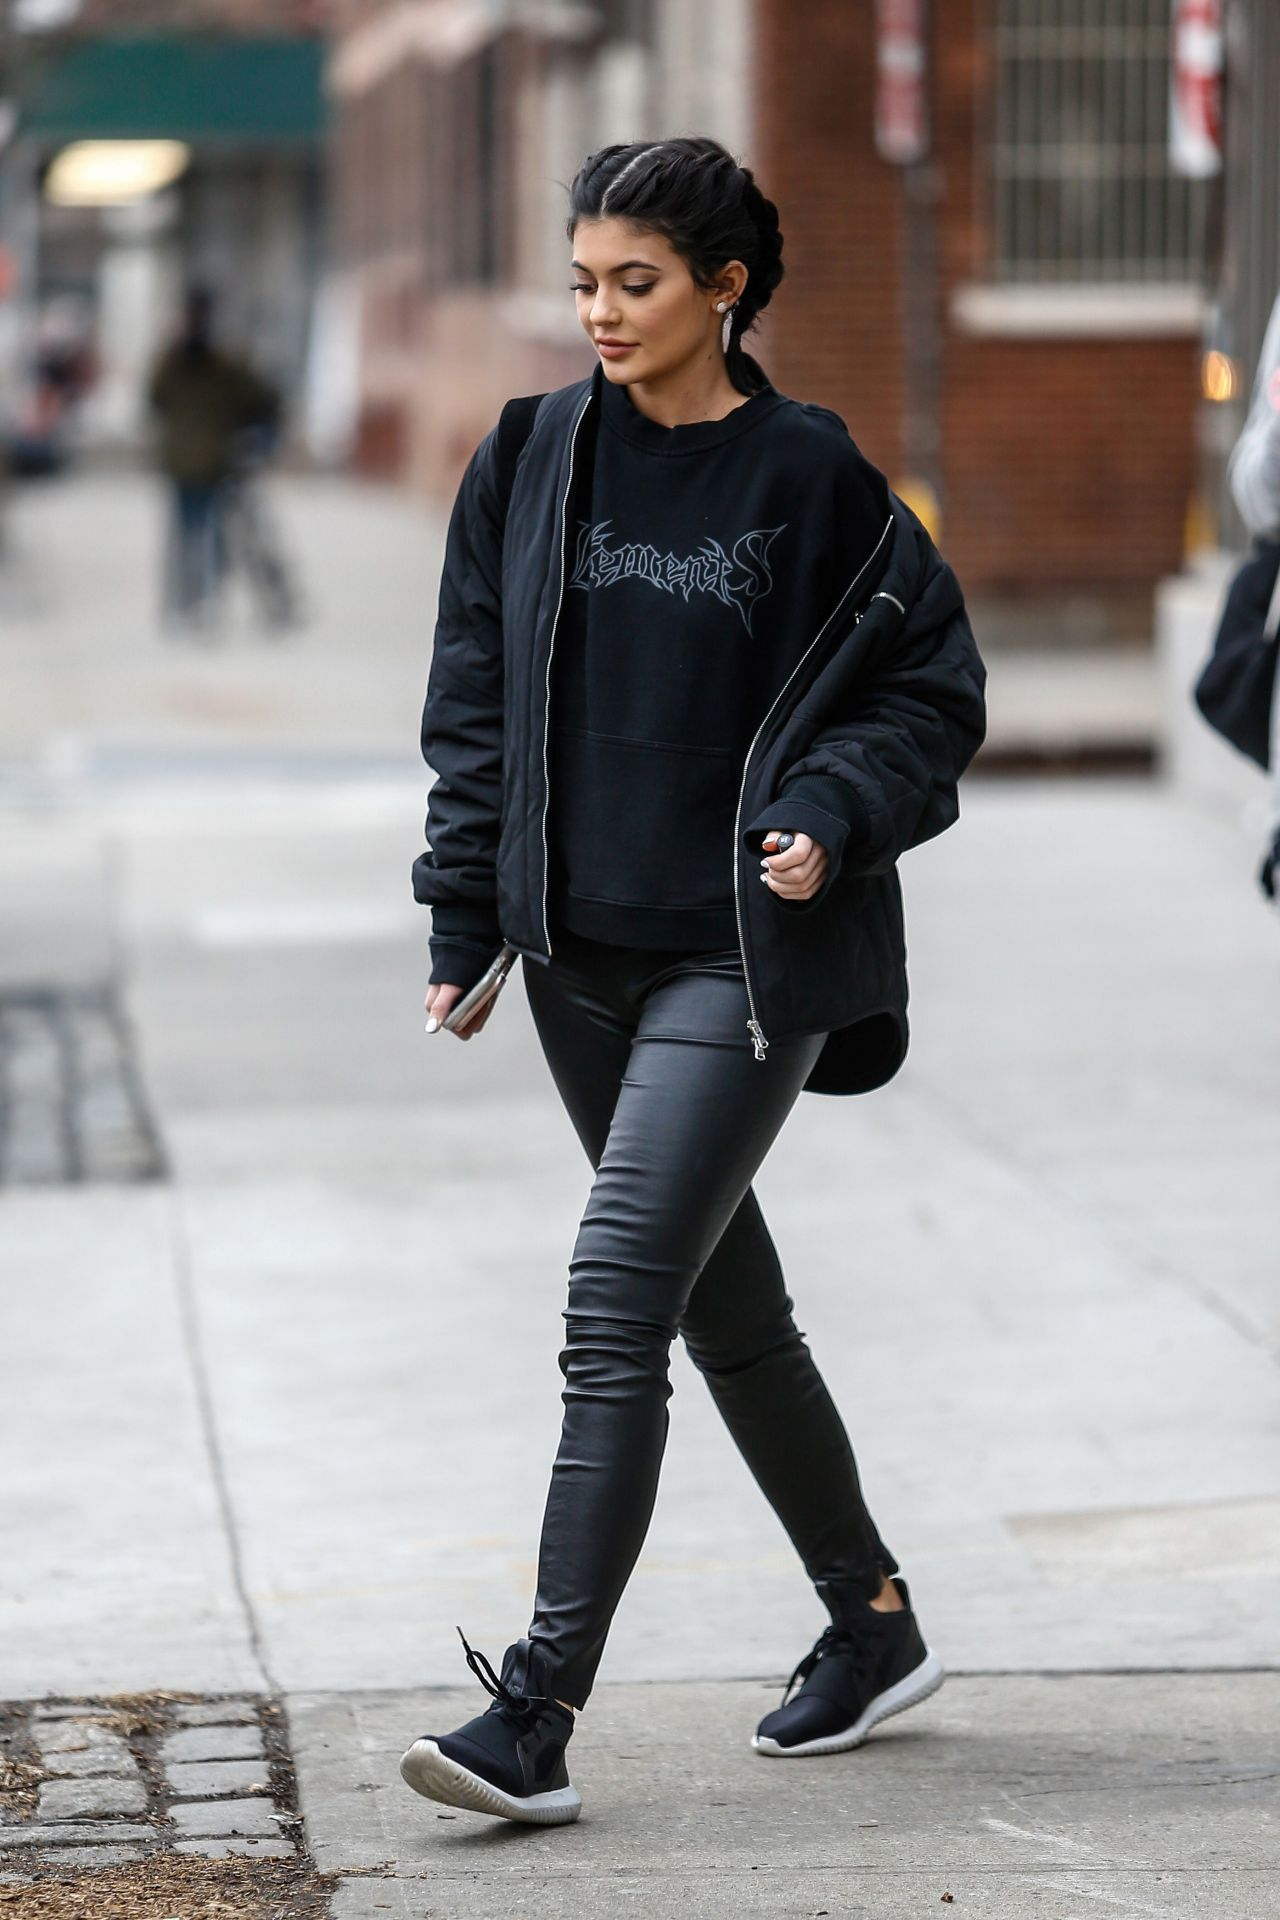 Out In New York City, February